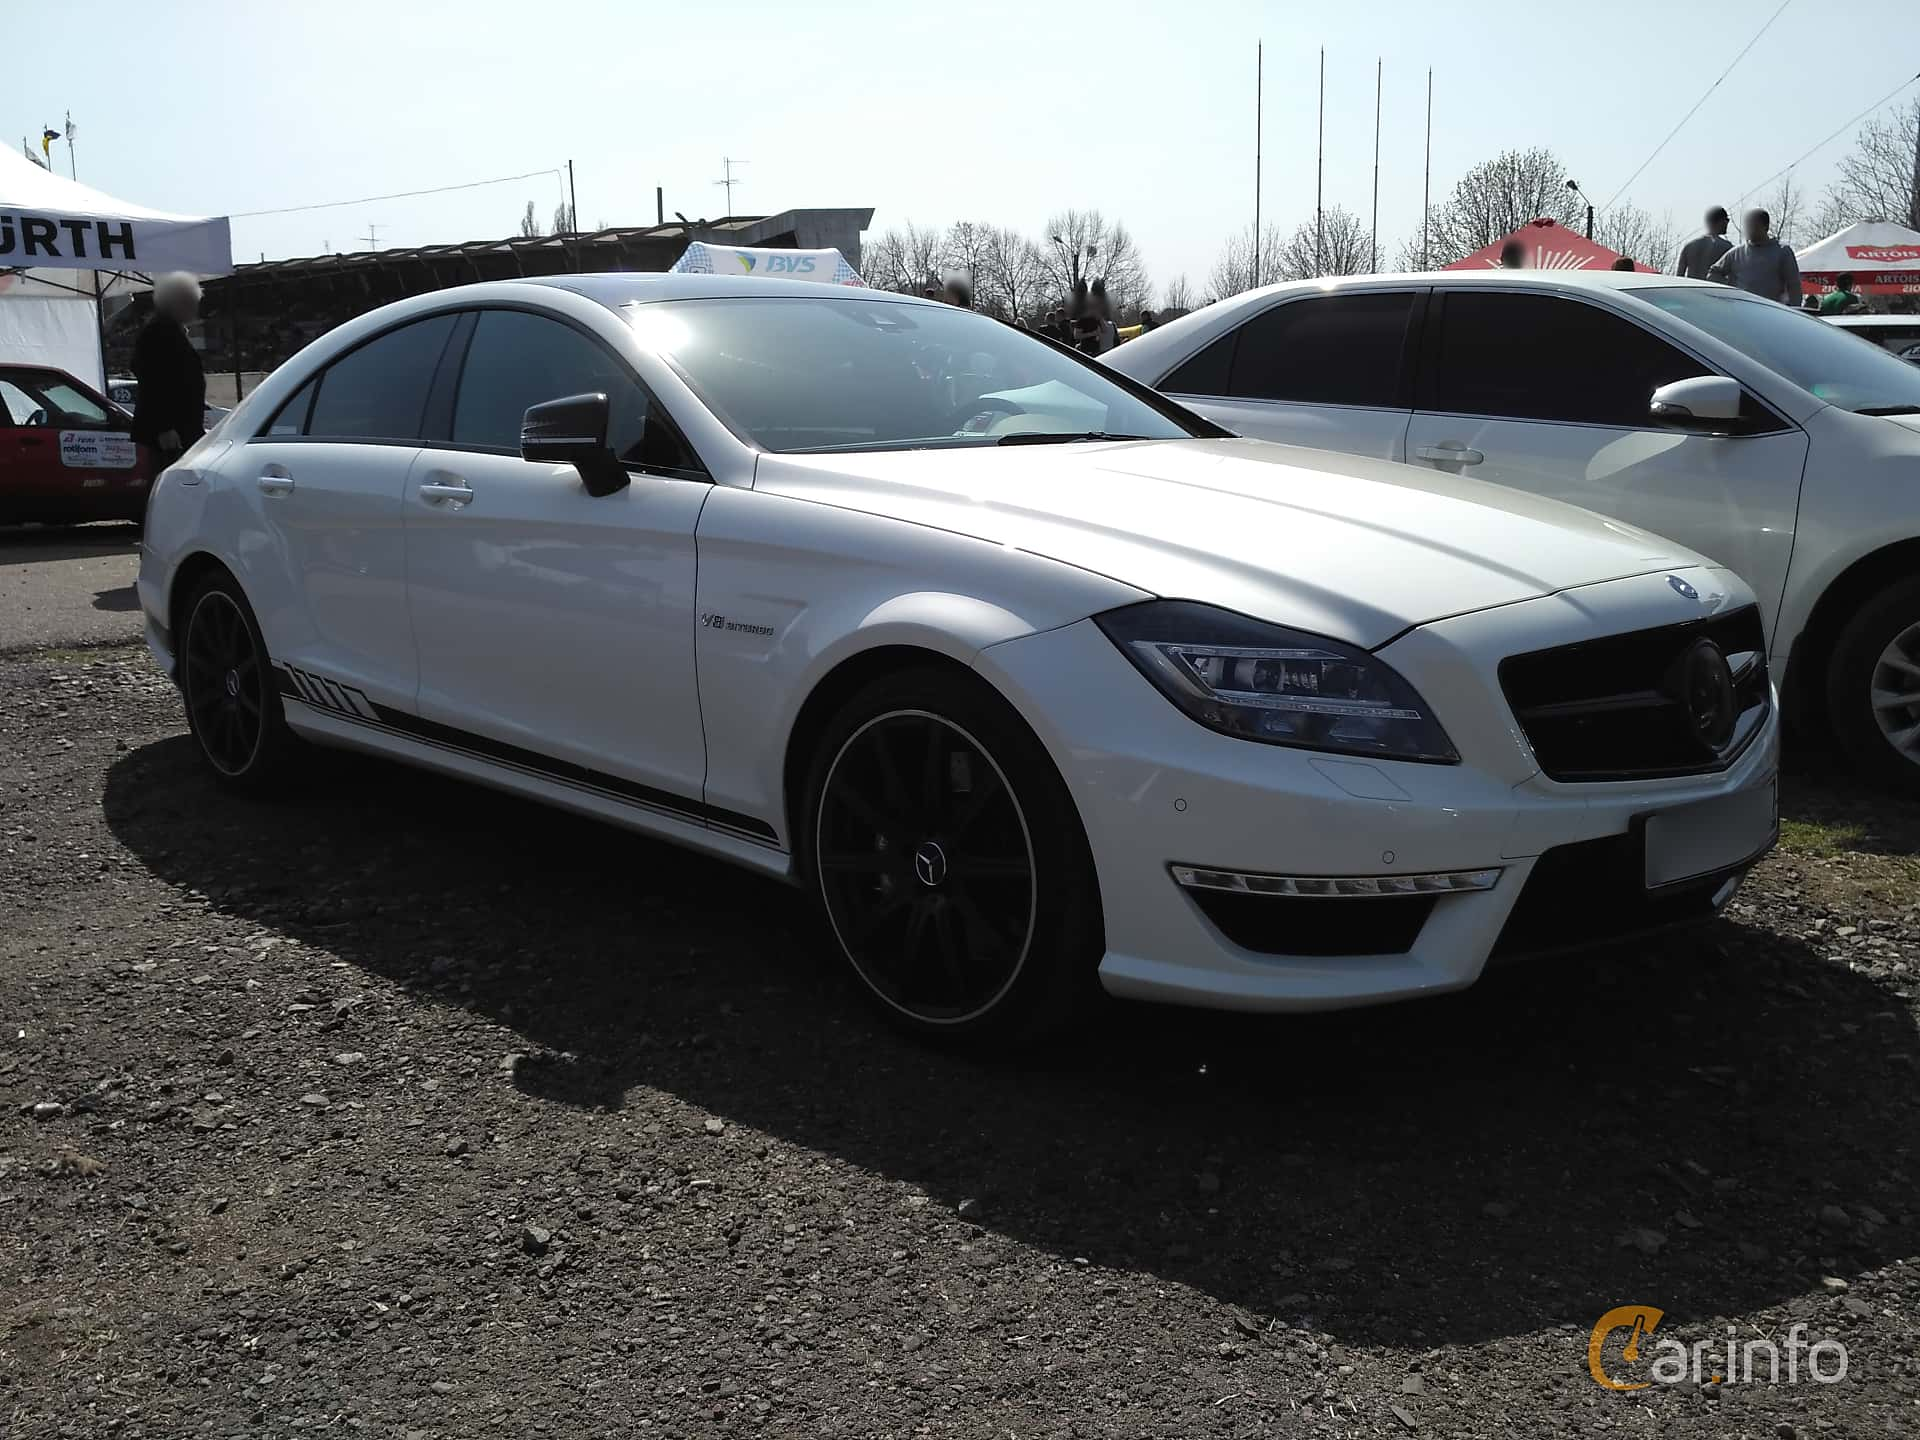 Mercedes-Benz CLS 63 AMG S 4MATIC  , 585hp, 2013 at Ltava Time Attack 1st Stage